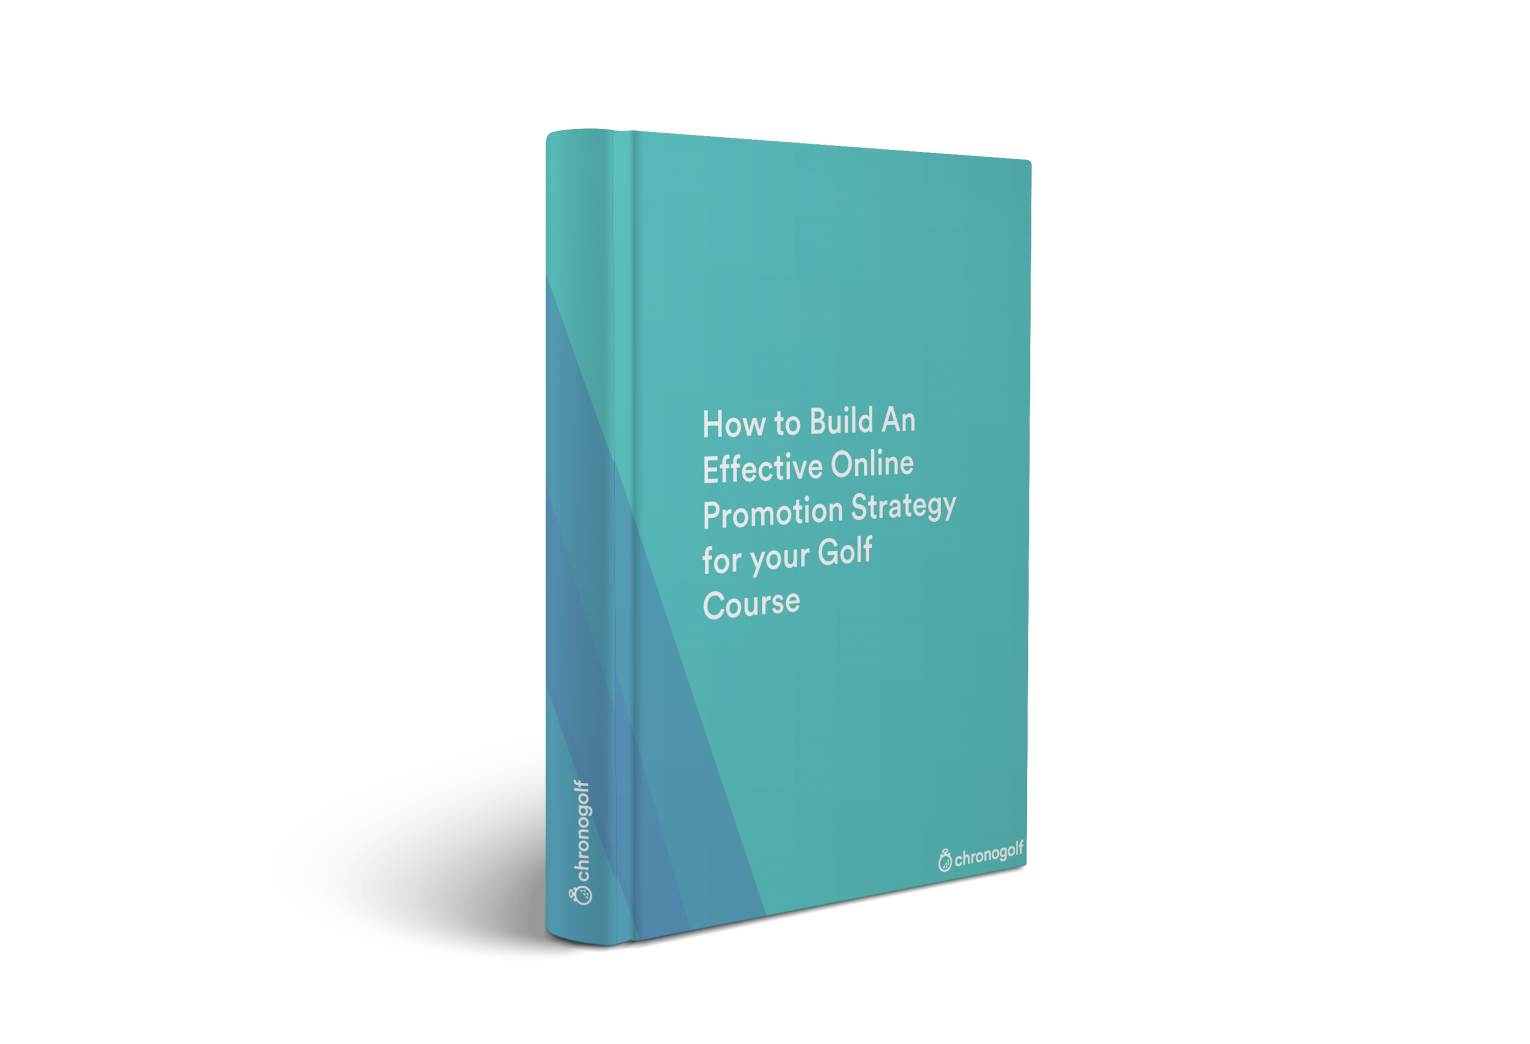 White-Paper-How-To-Build-An-Effective-Online-Promotion-Strategy-for-your-Golf-Course-1530x1044